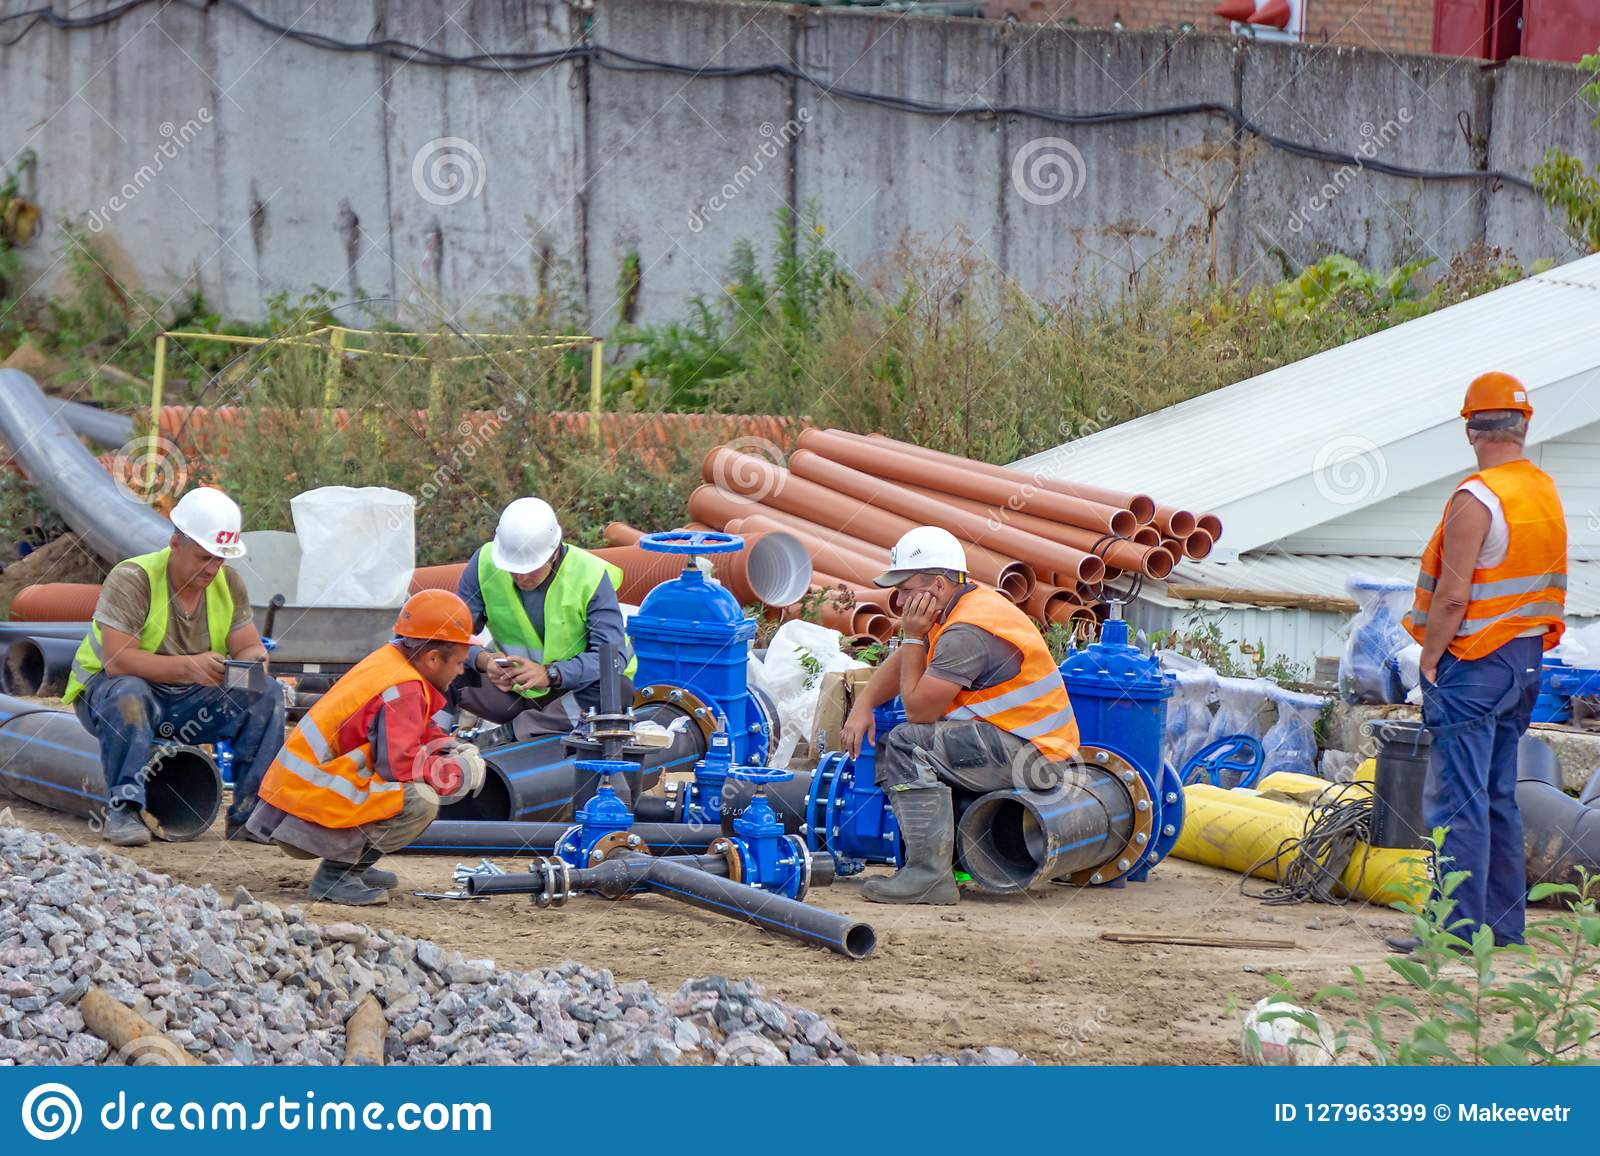 Workers at break and collect pipeline.